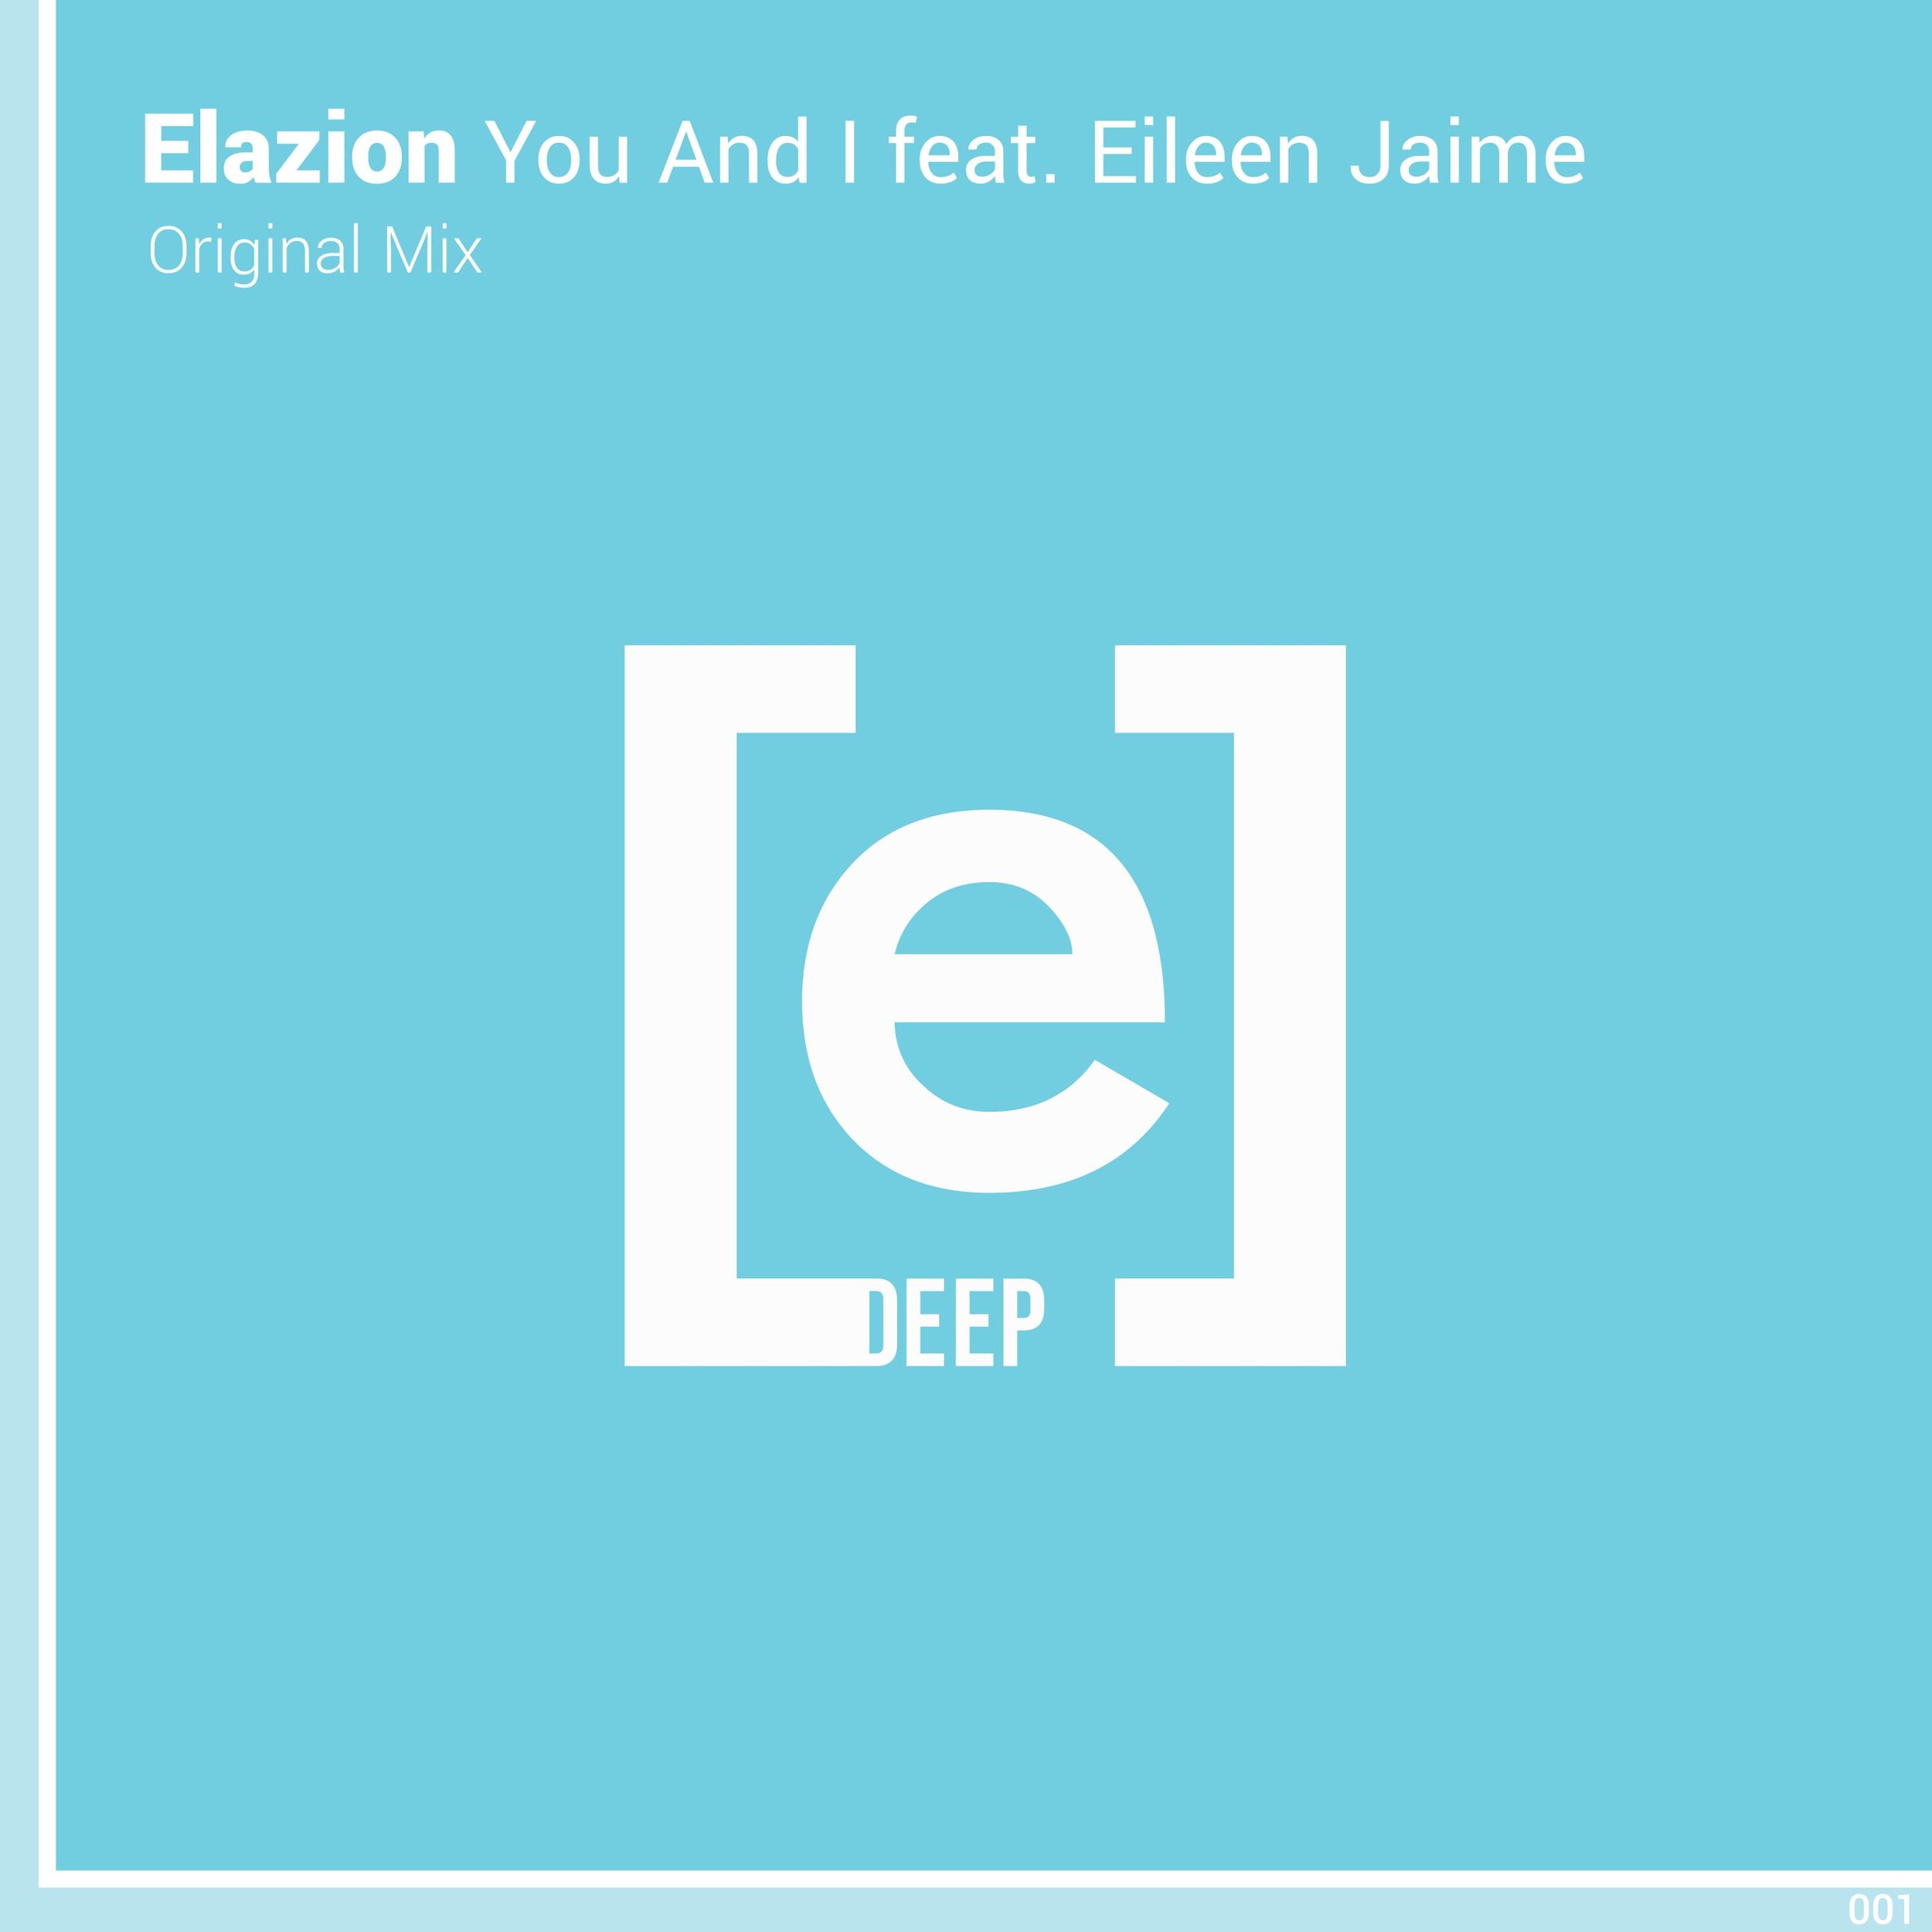 Elazion - You and I feat. Eileen Jaime